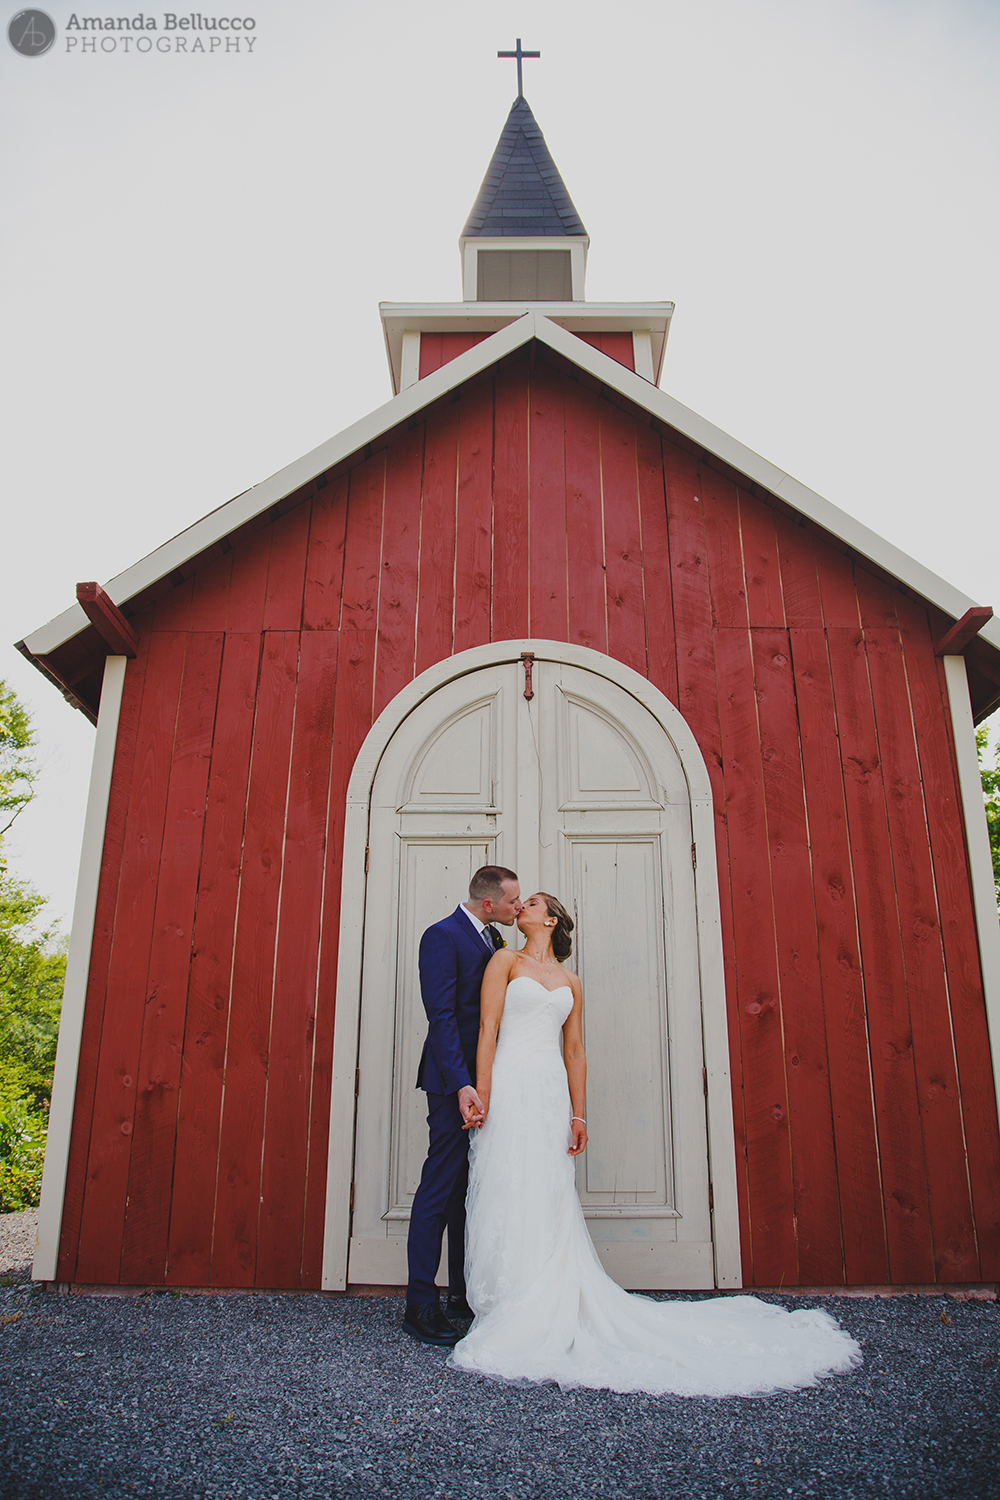 hayloft_on_the_arch_wedding_photography_19.jpg